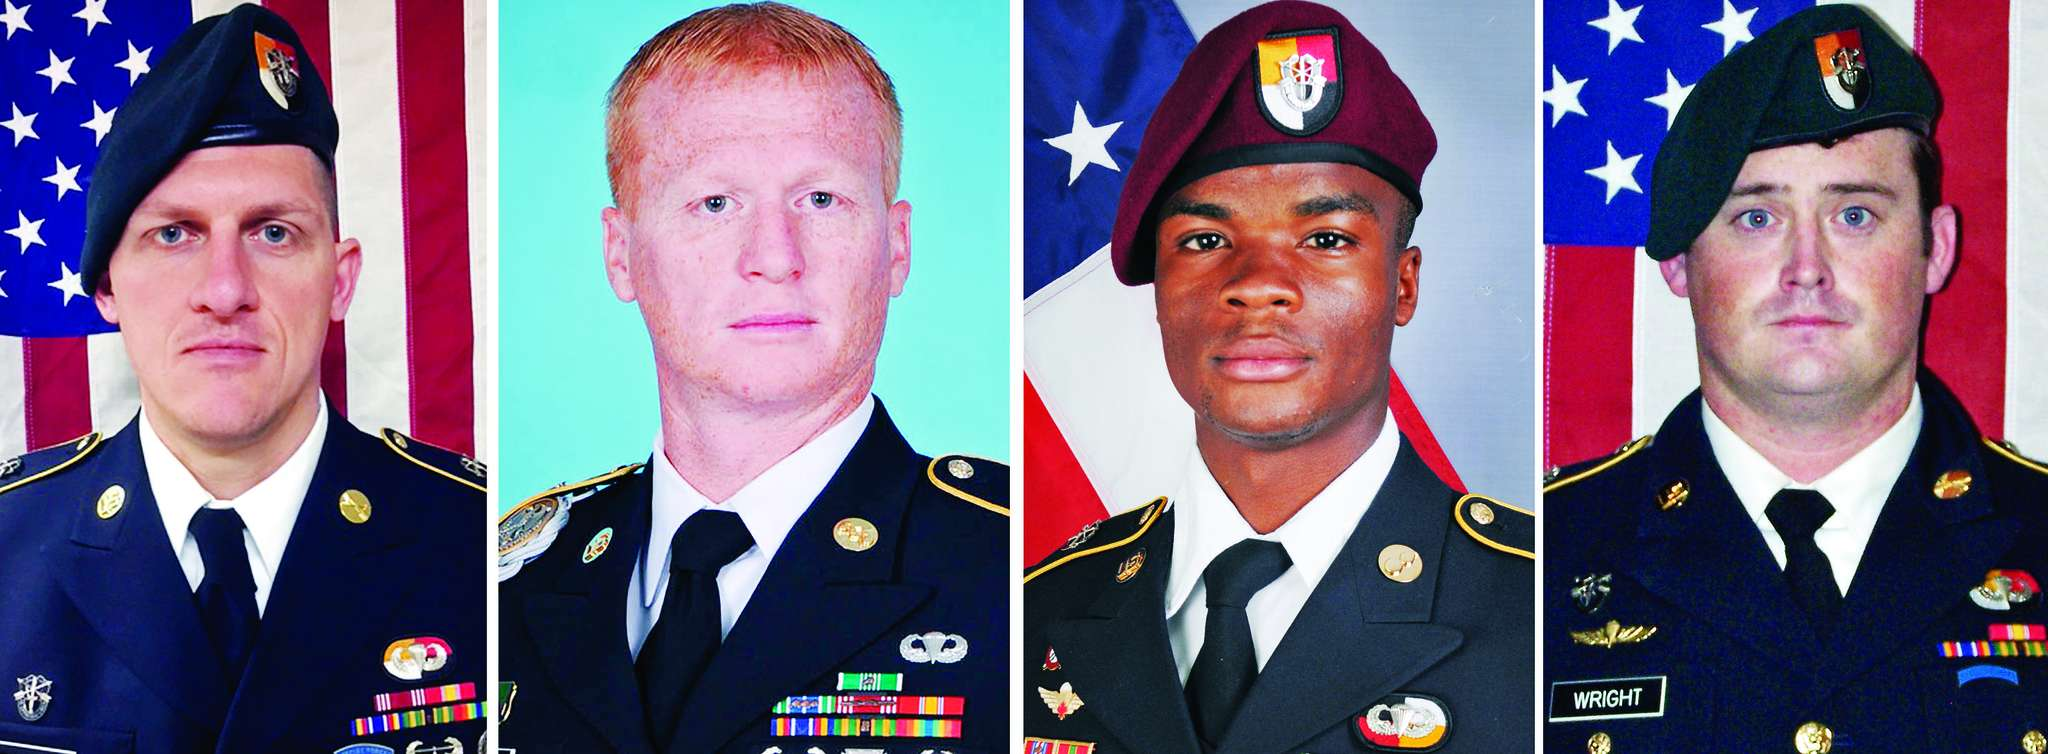 Pictured from left are Staff Sgt. Bryan C. Black, 35, of Puyallup, Wash.; Staff Sgt. Jeremiah W. Johnson, 39, of Springboro, Ohio; Sgt. La David Johnson of Miami Gardens, Fla.; and Staff Sgt. Dustin M. Wright, 29, of Lyons, Ga. All four were killed in a Niger ambush.